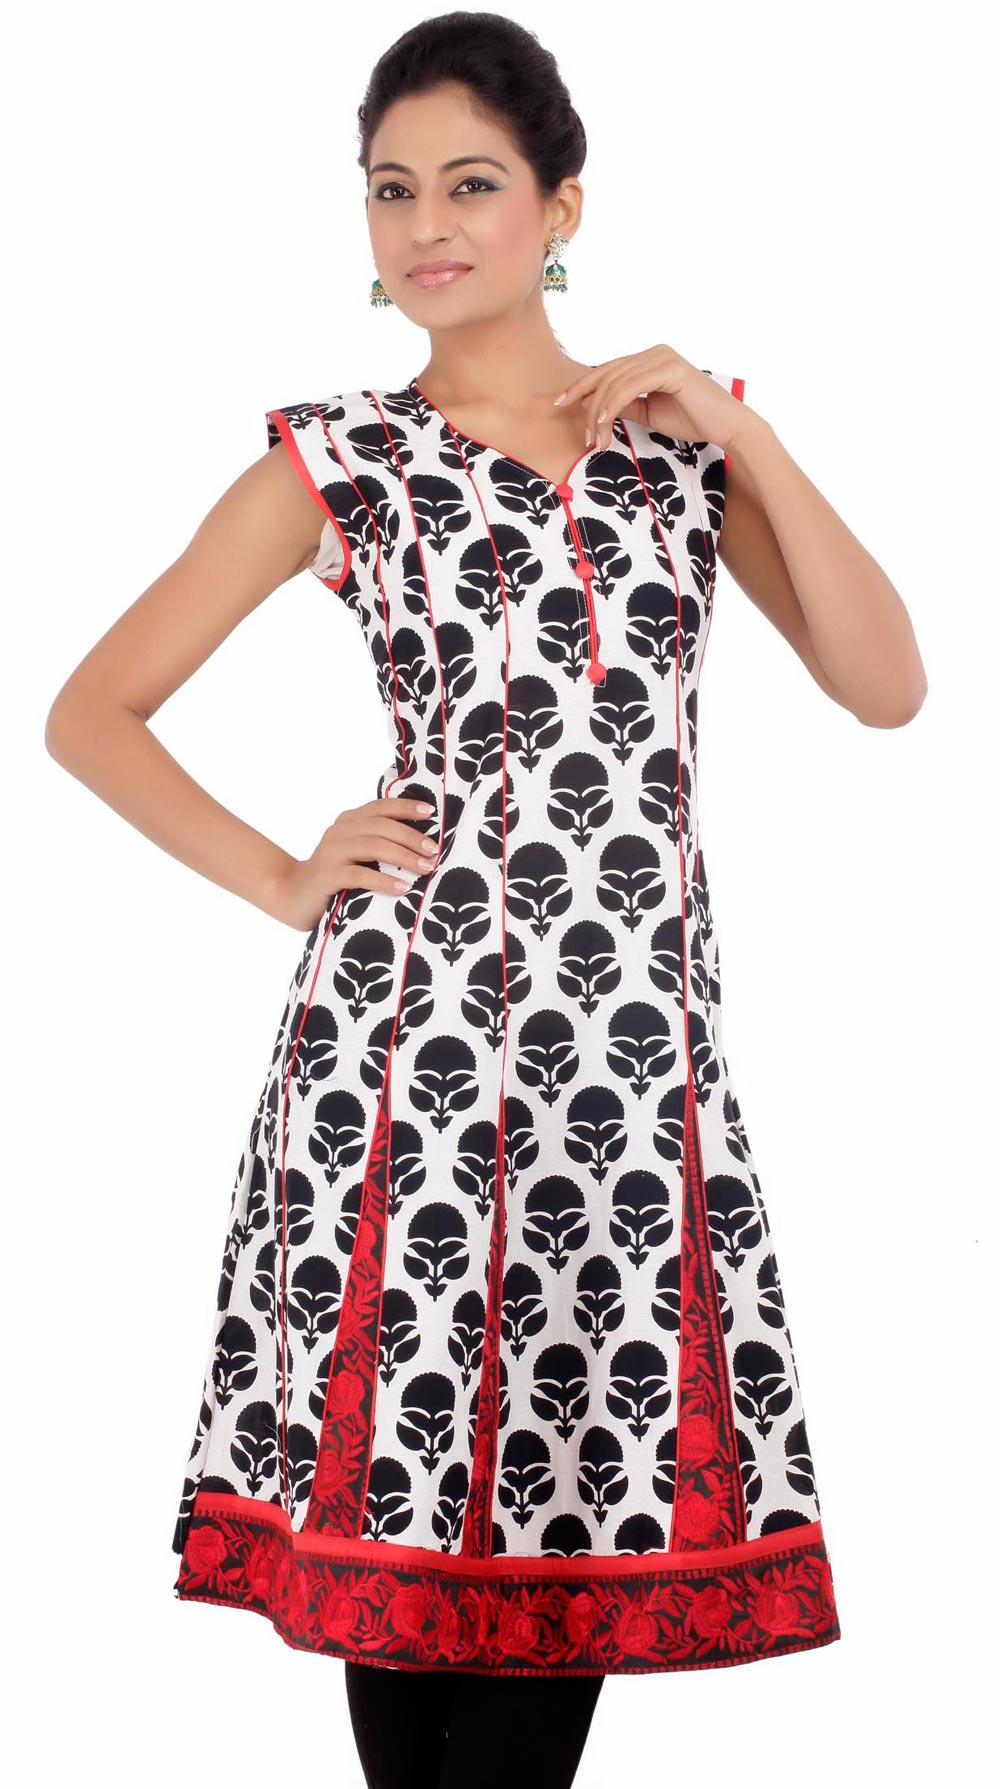 Shirt design with laces - Latest Women Cotton Shirts And Kurti Designs For Spring Summer 3